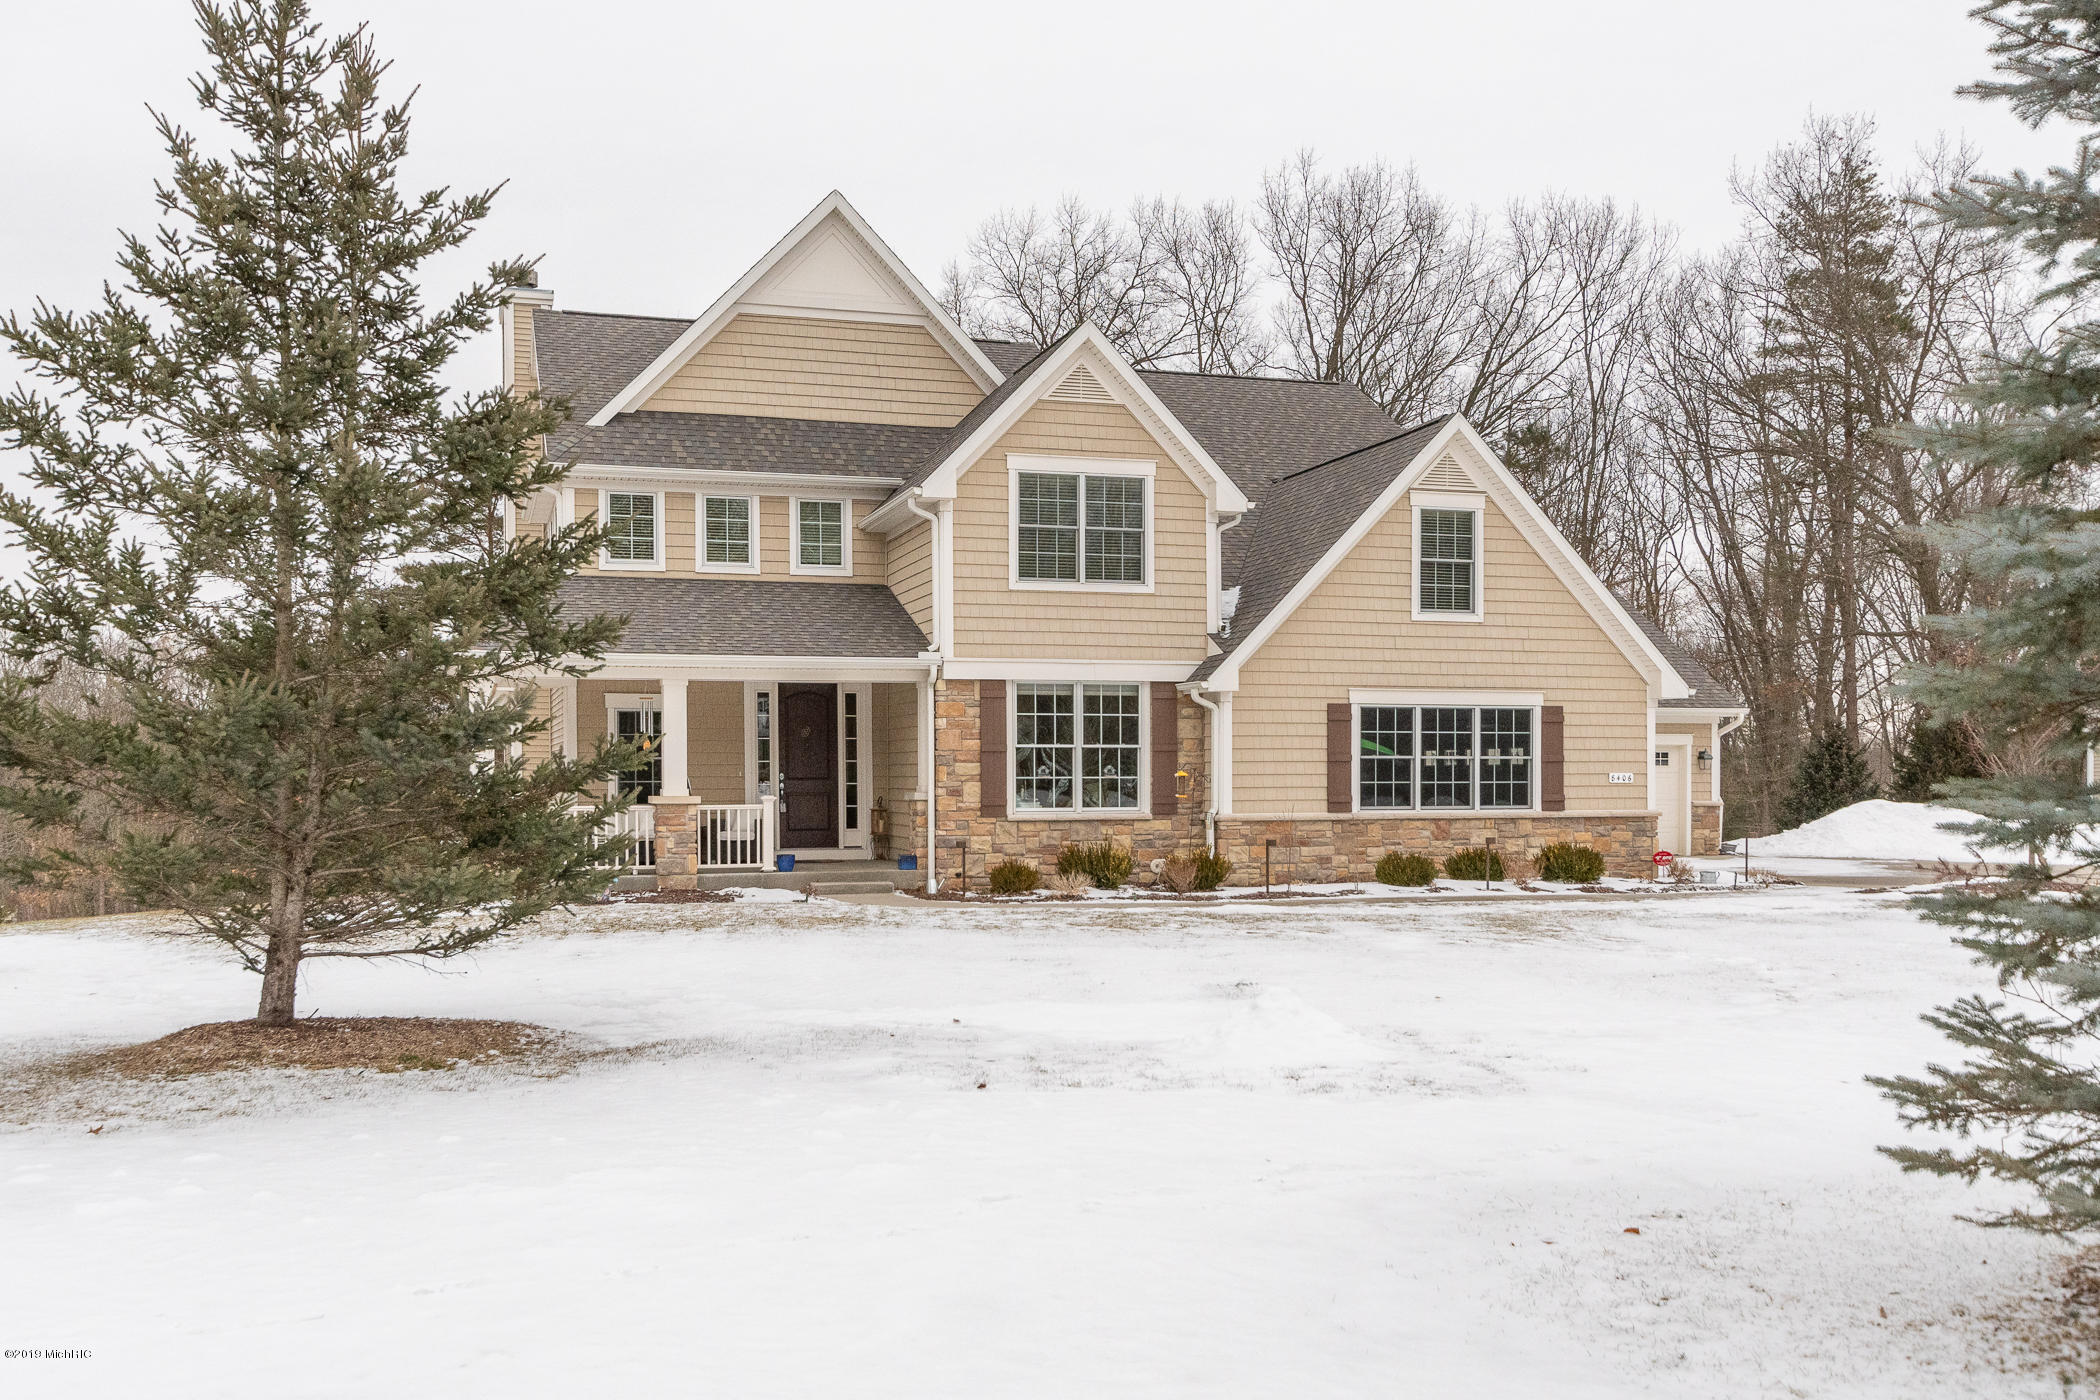 Photo for 8406 Barony Point, Mattawan, MI 49071 (MLS # 19007198)